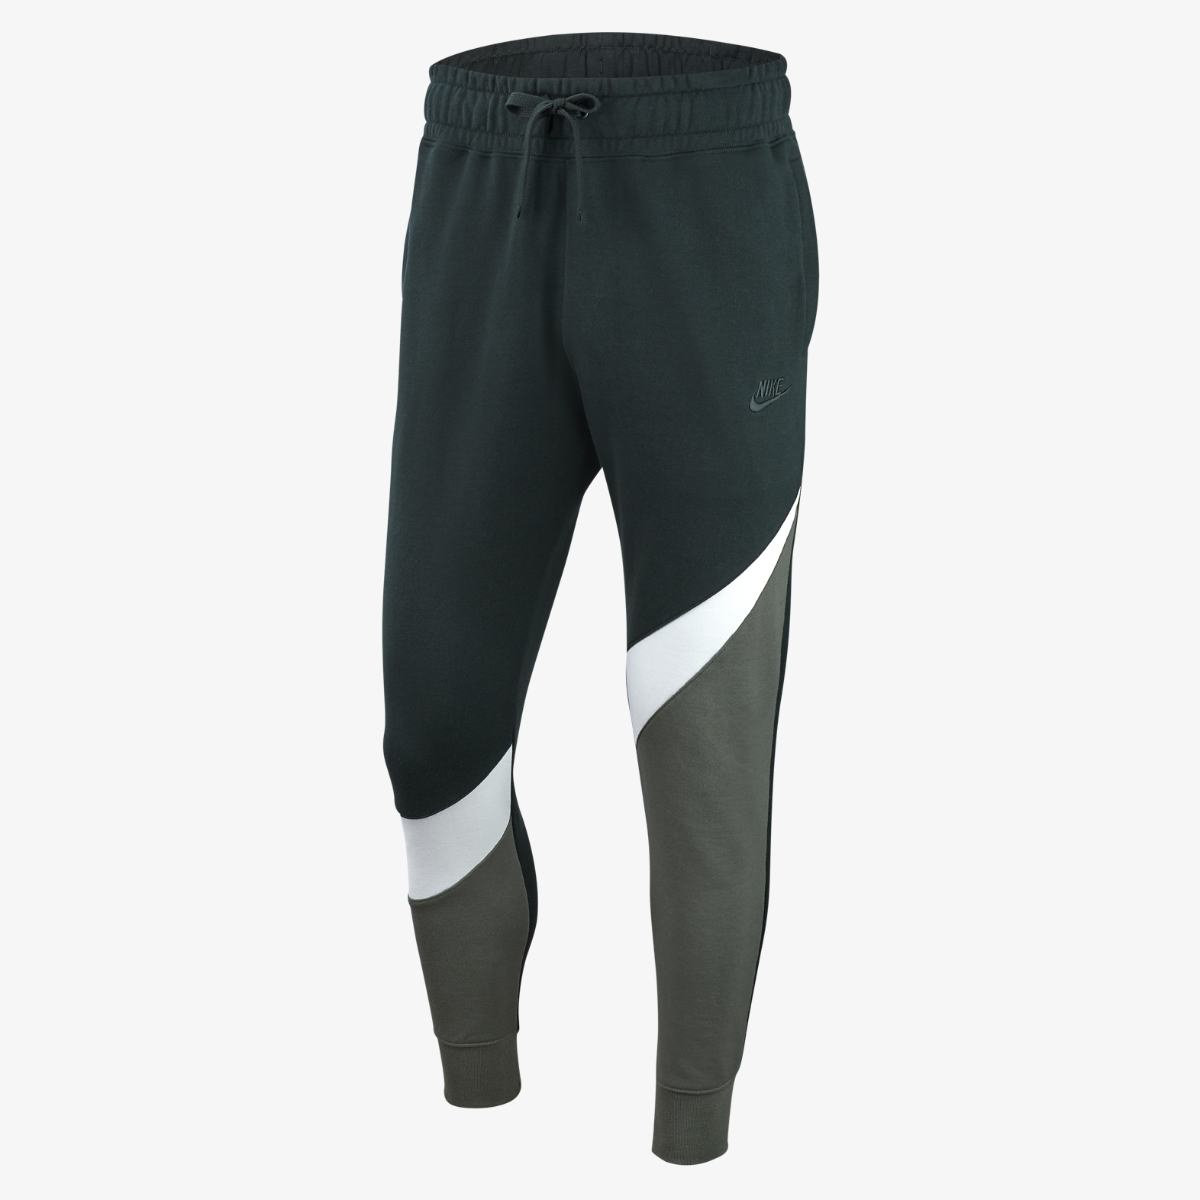 Брюки Nike M NSW HBR PANT FT STMT